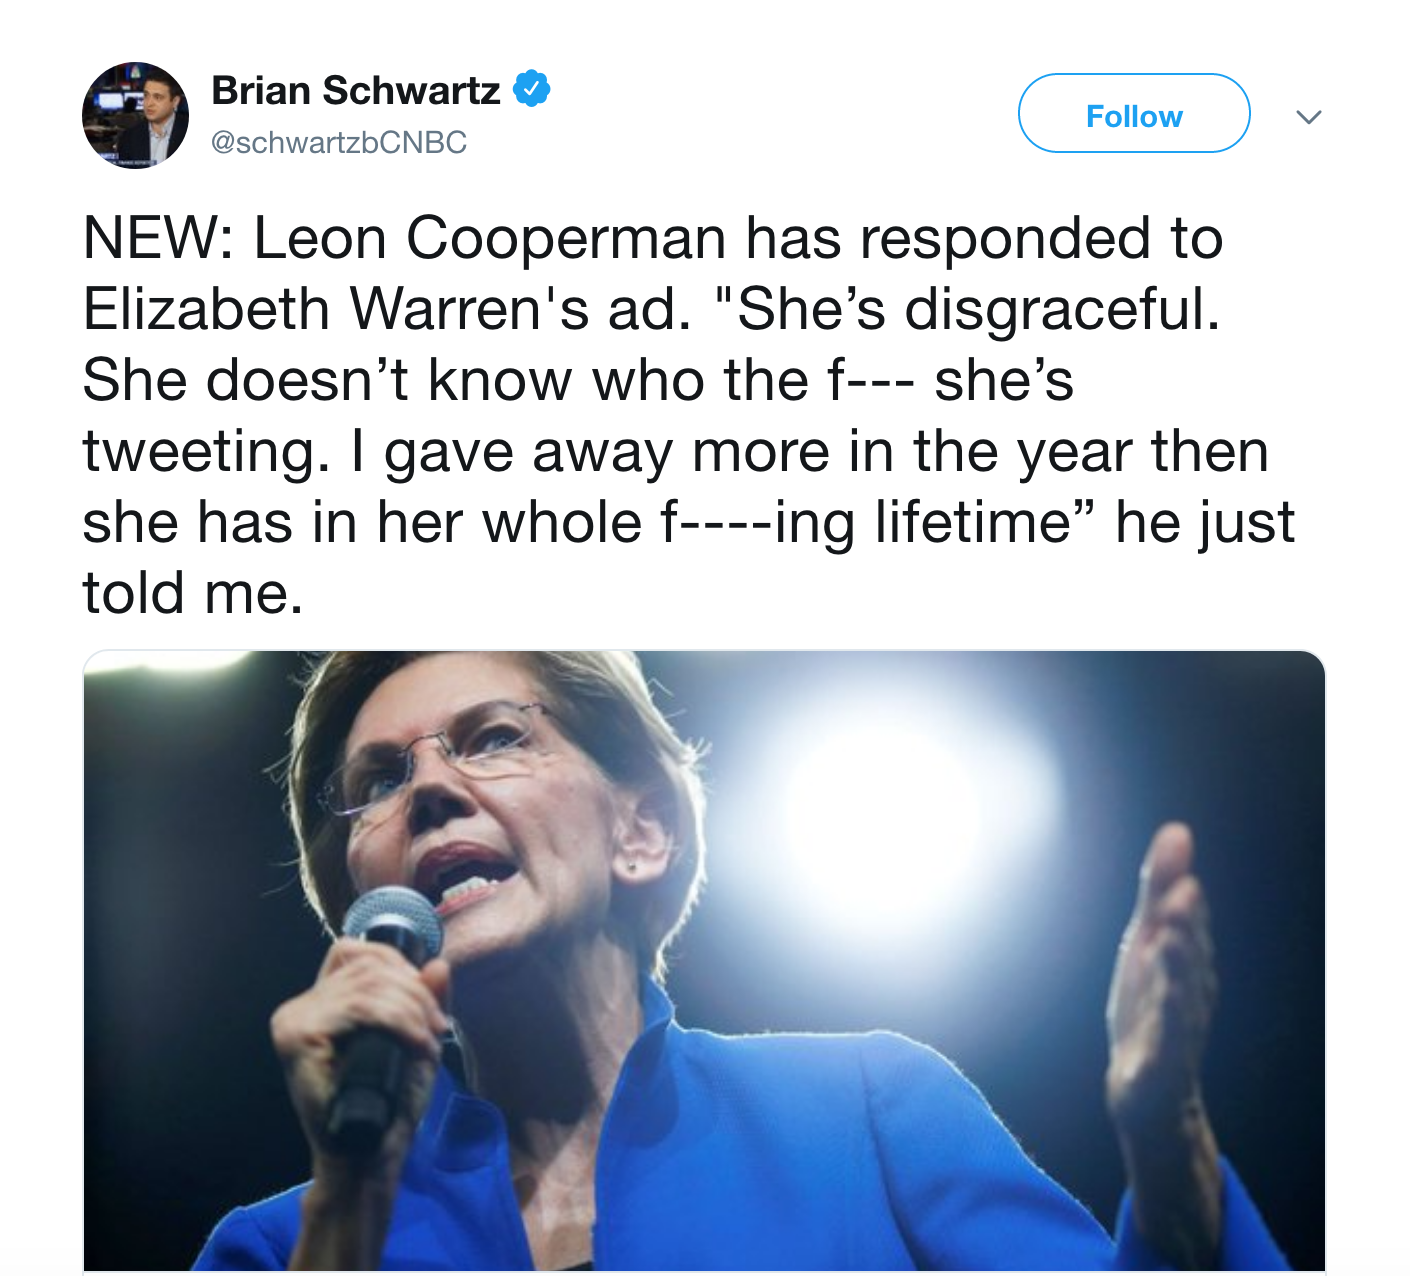 Screenshot of a tweet from CNBC reporter Brian Schwartz detailing text of his exchange with Leon Cooperman.